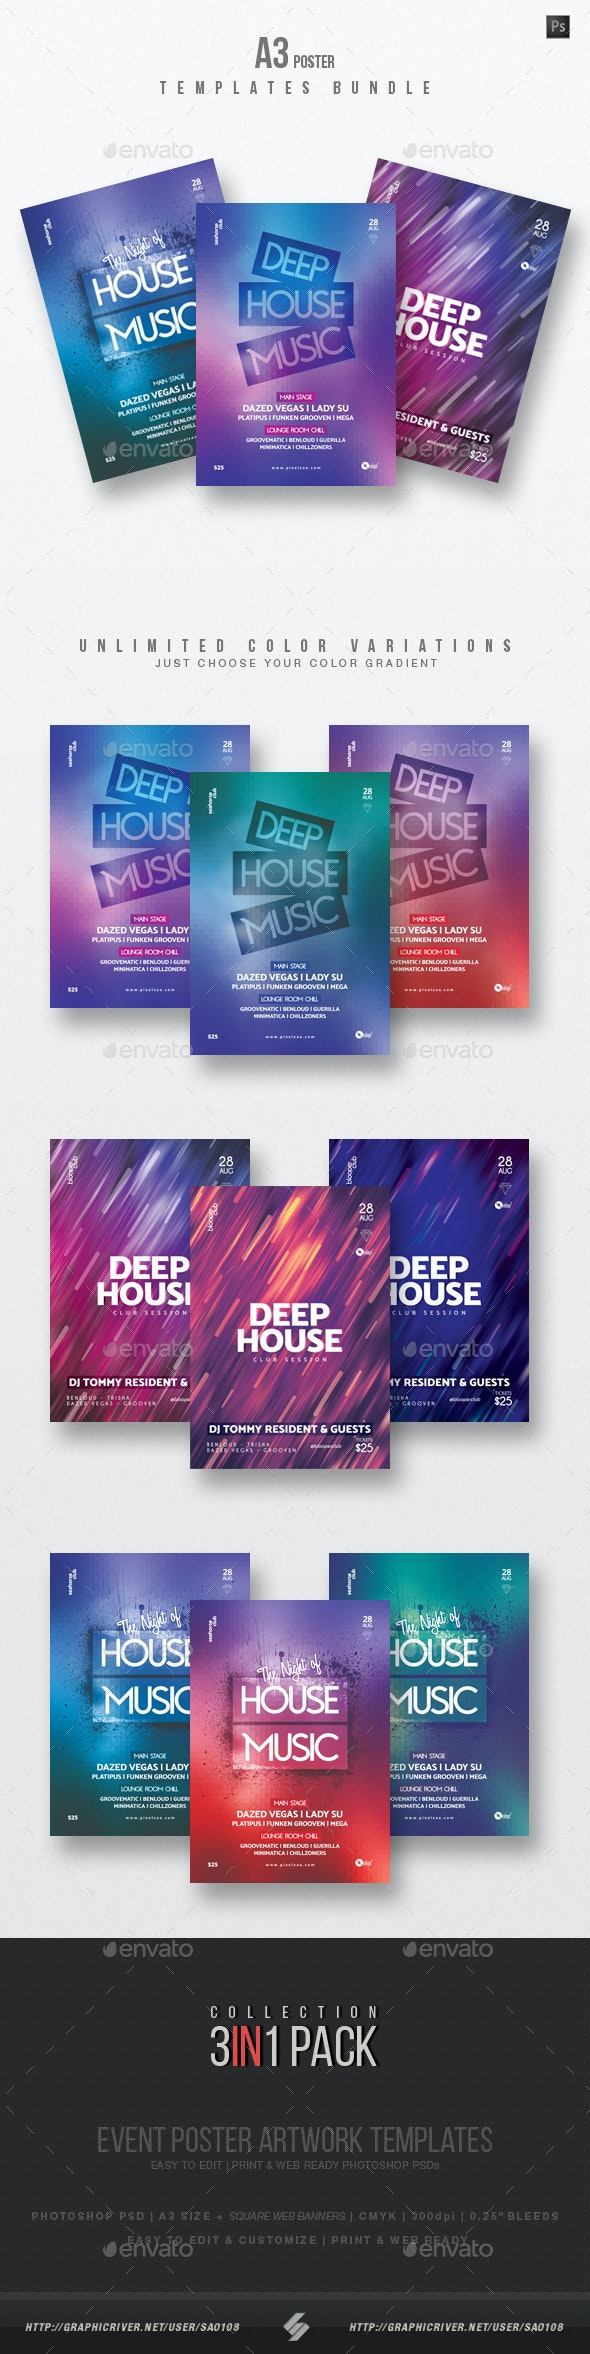 House Music 5 - Party Flyer / Poster Templates Bundle - Clubs & Parties Events